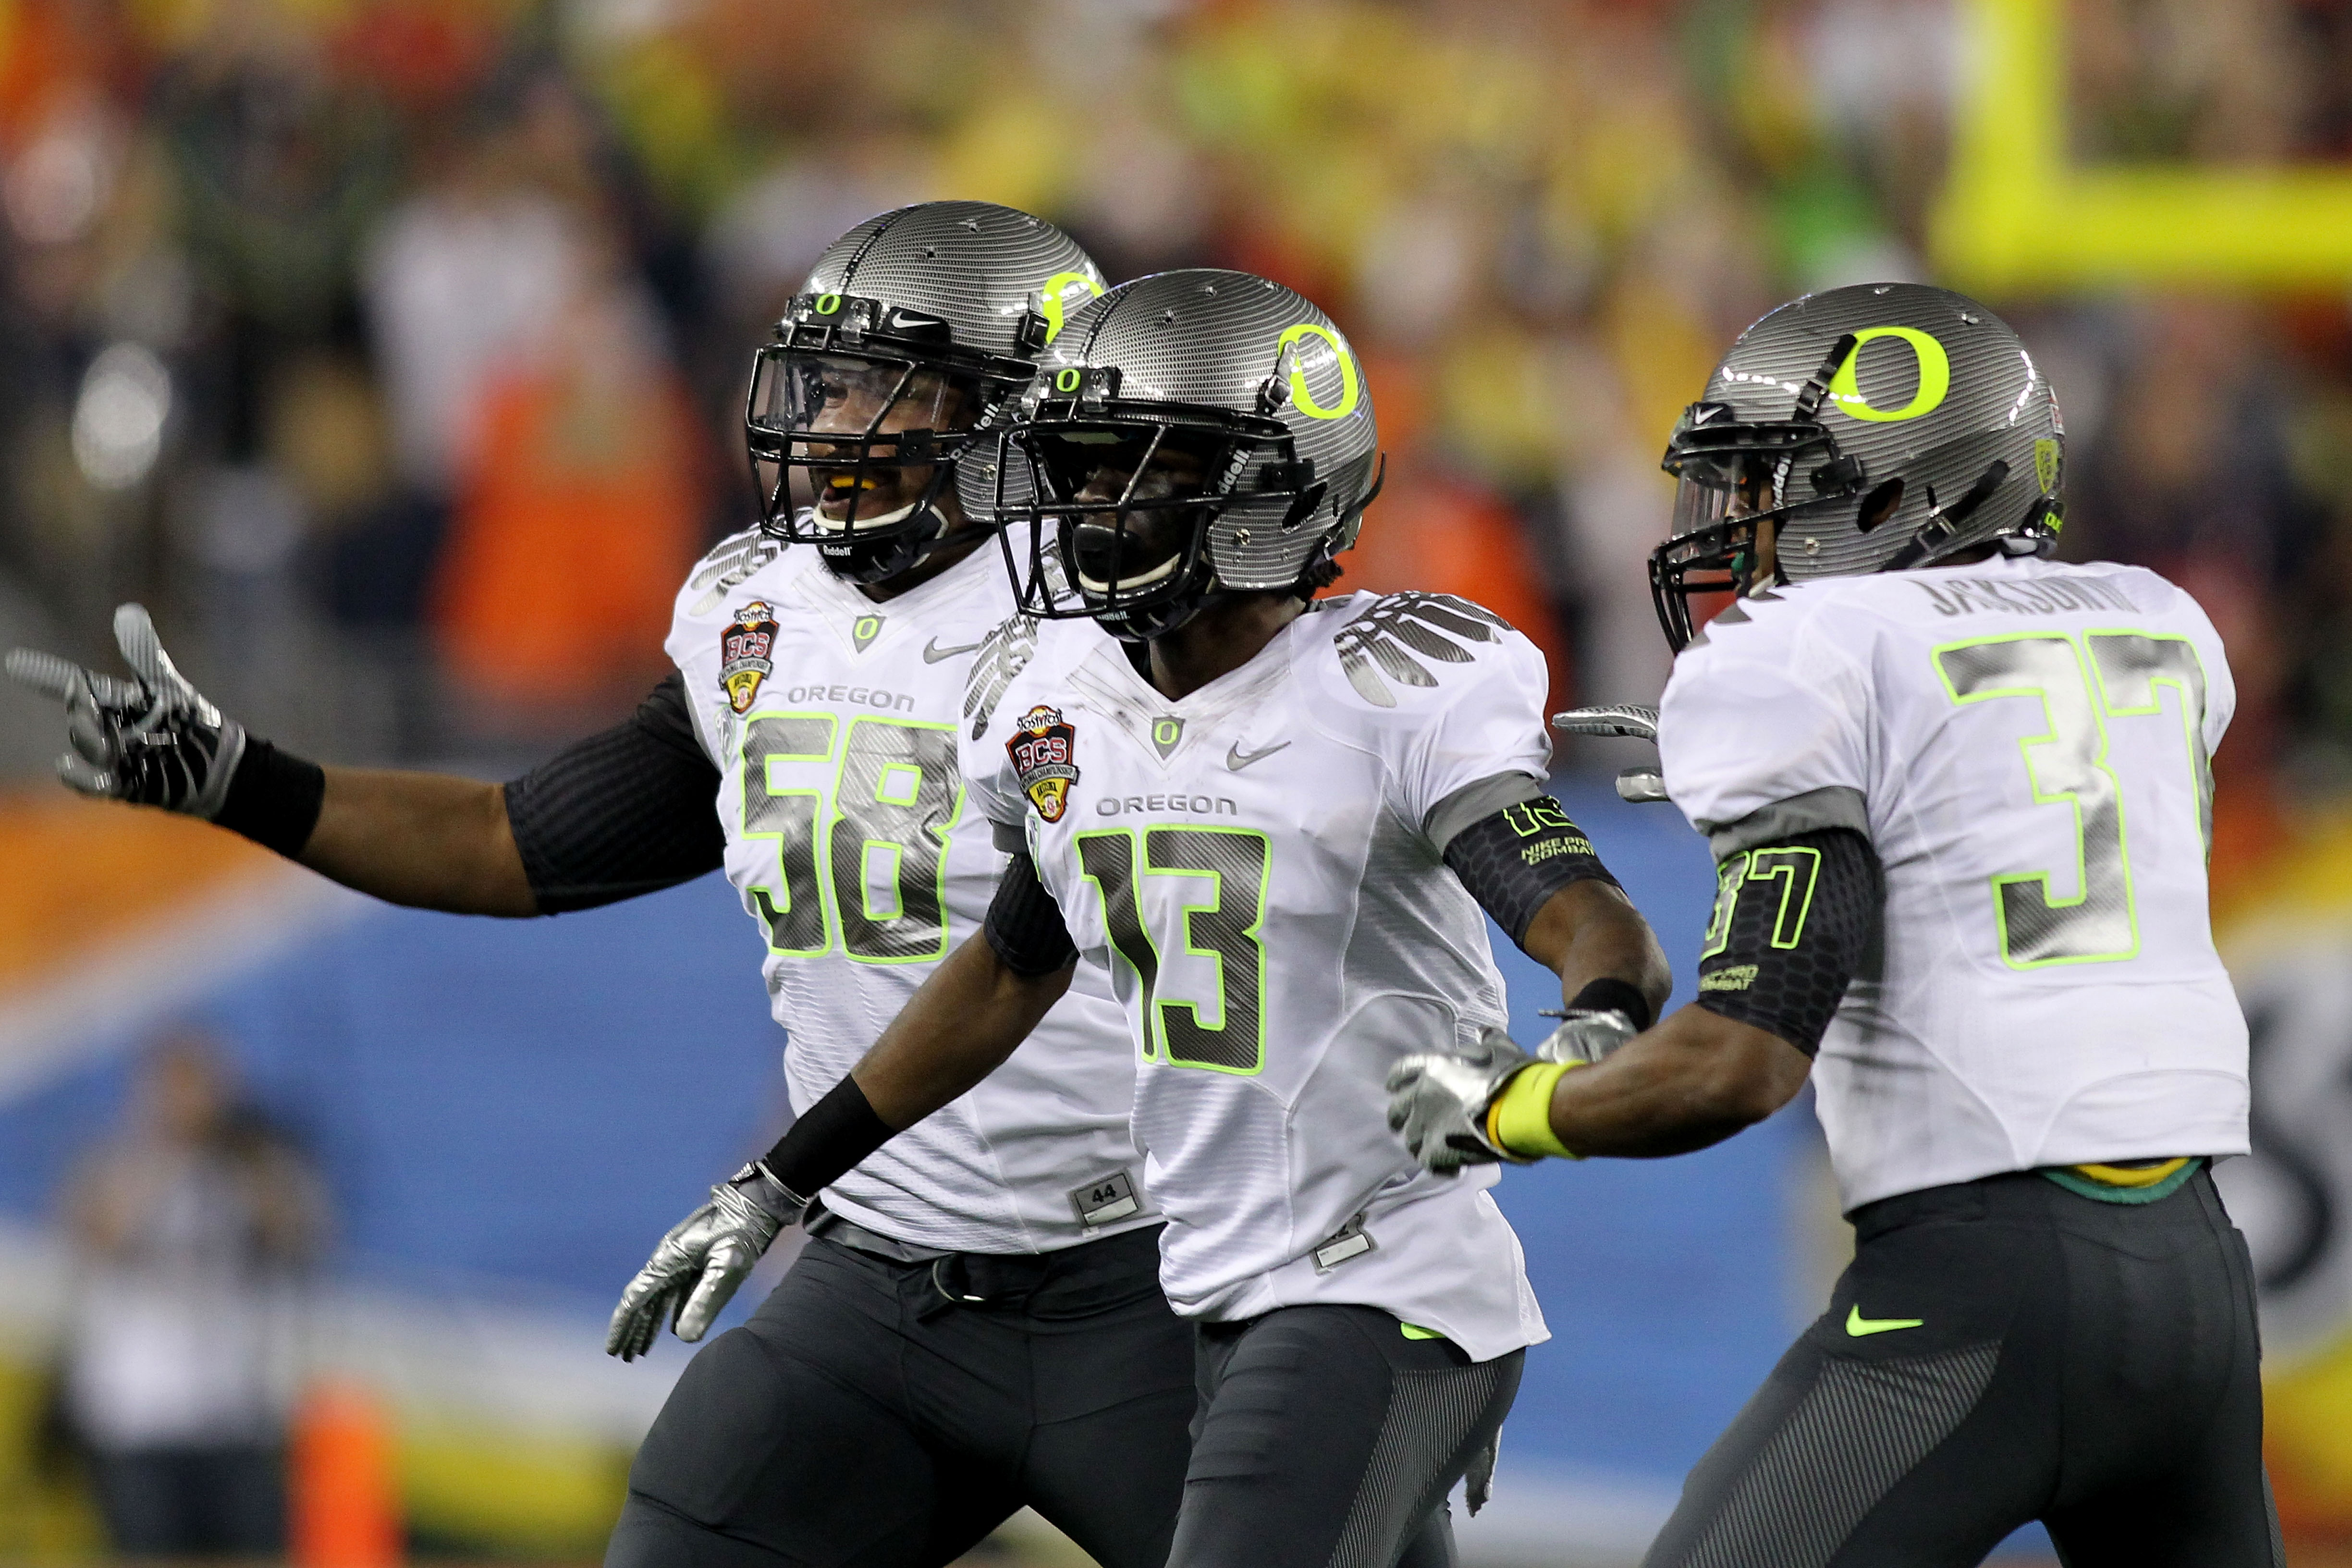 GLENDALE, AZ - JANUARY 10:  Cliff Harris #13 of the Oregon Ducks celebrates his first quarter interception with teammates Drew Howell #50 and Talmadge Jackson III #37 against the Auburn Tigers during the Tostitos BCS National Championship Game at Universi